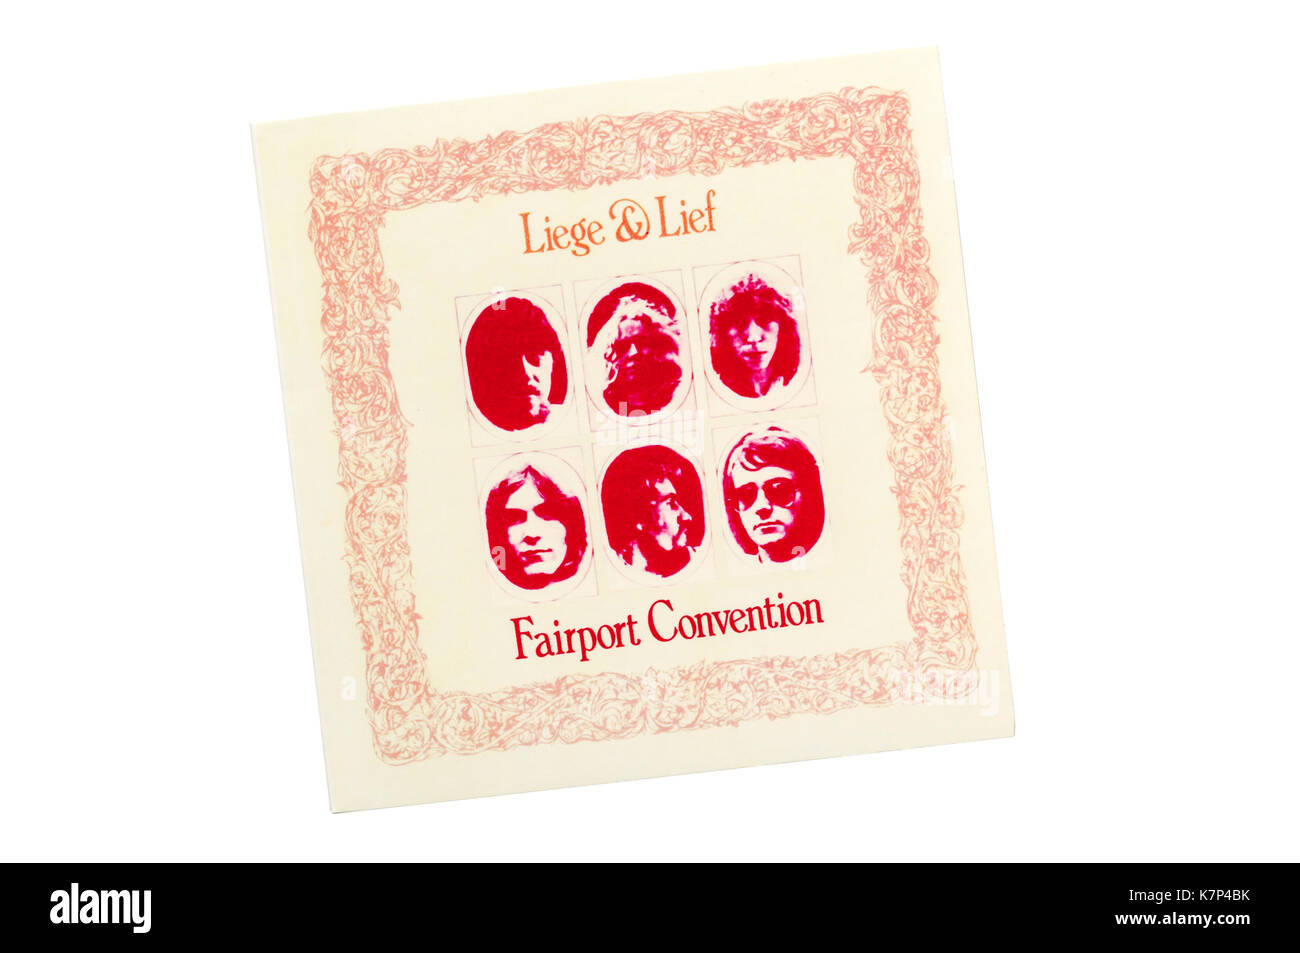 Liege & Lief was the fourth album by the English folk rock band Fairport Convention. Released in the UK in 1969. - Stock Image